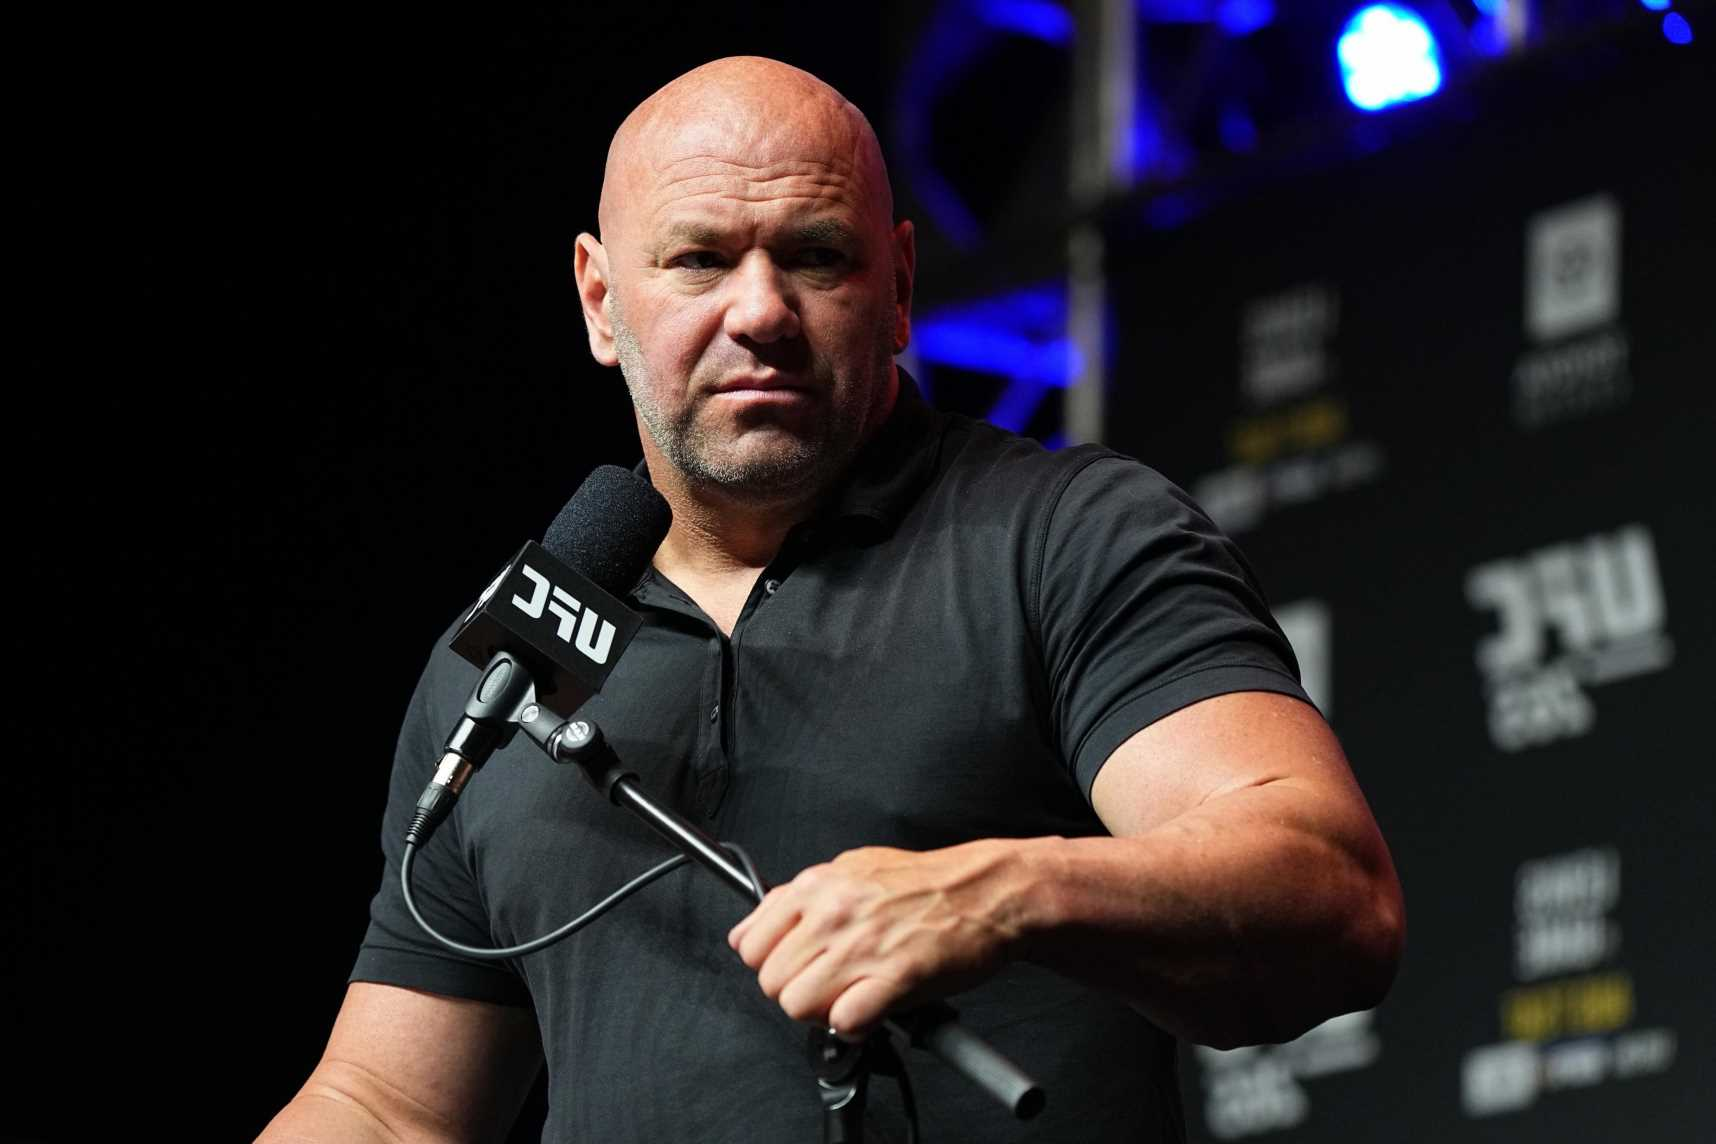 UFC boss Dana White reveals he's turned down whopping £2.2MILLION offer to write a book about his life in MMA